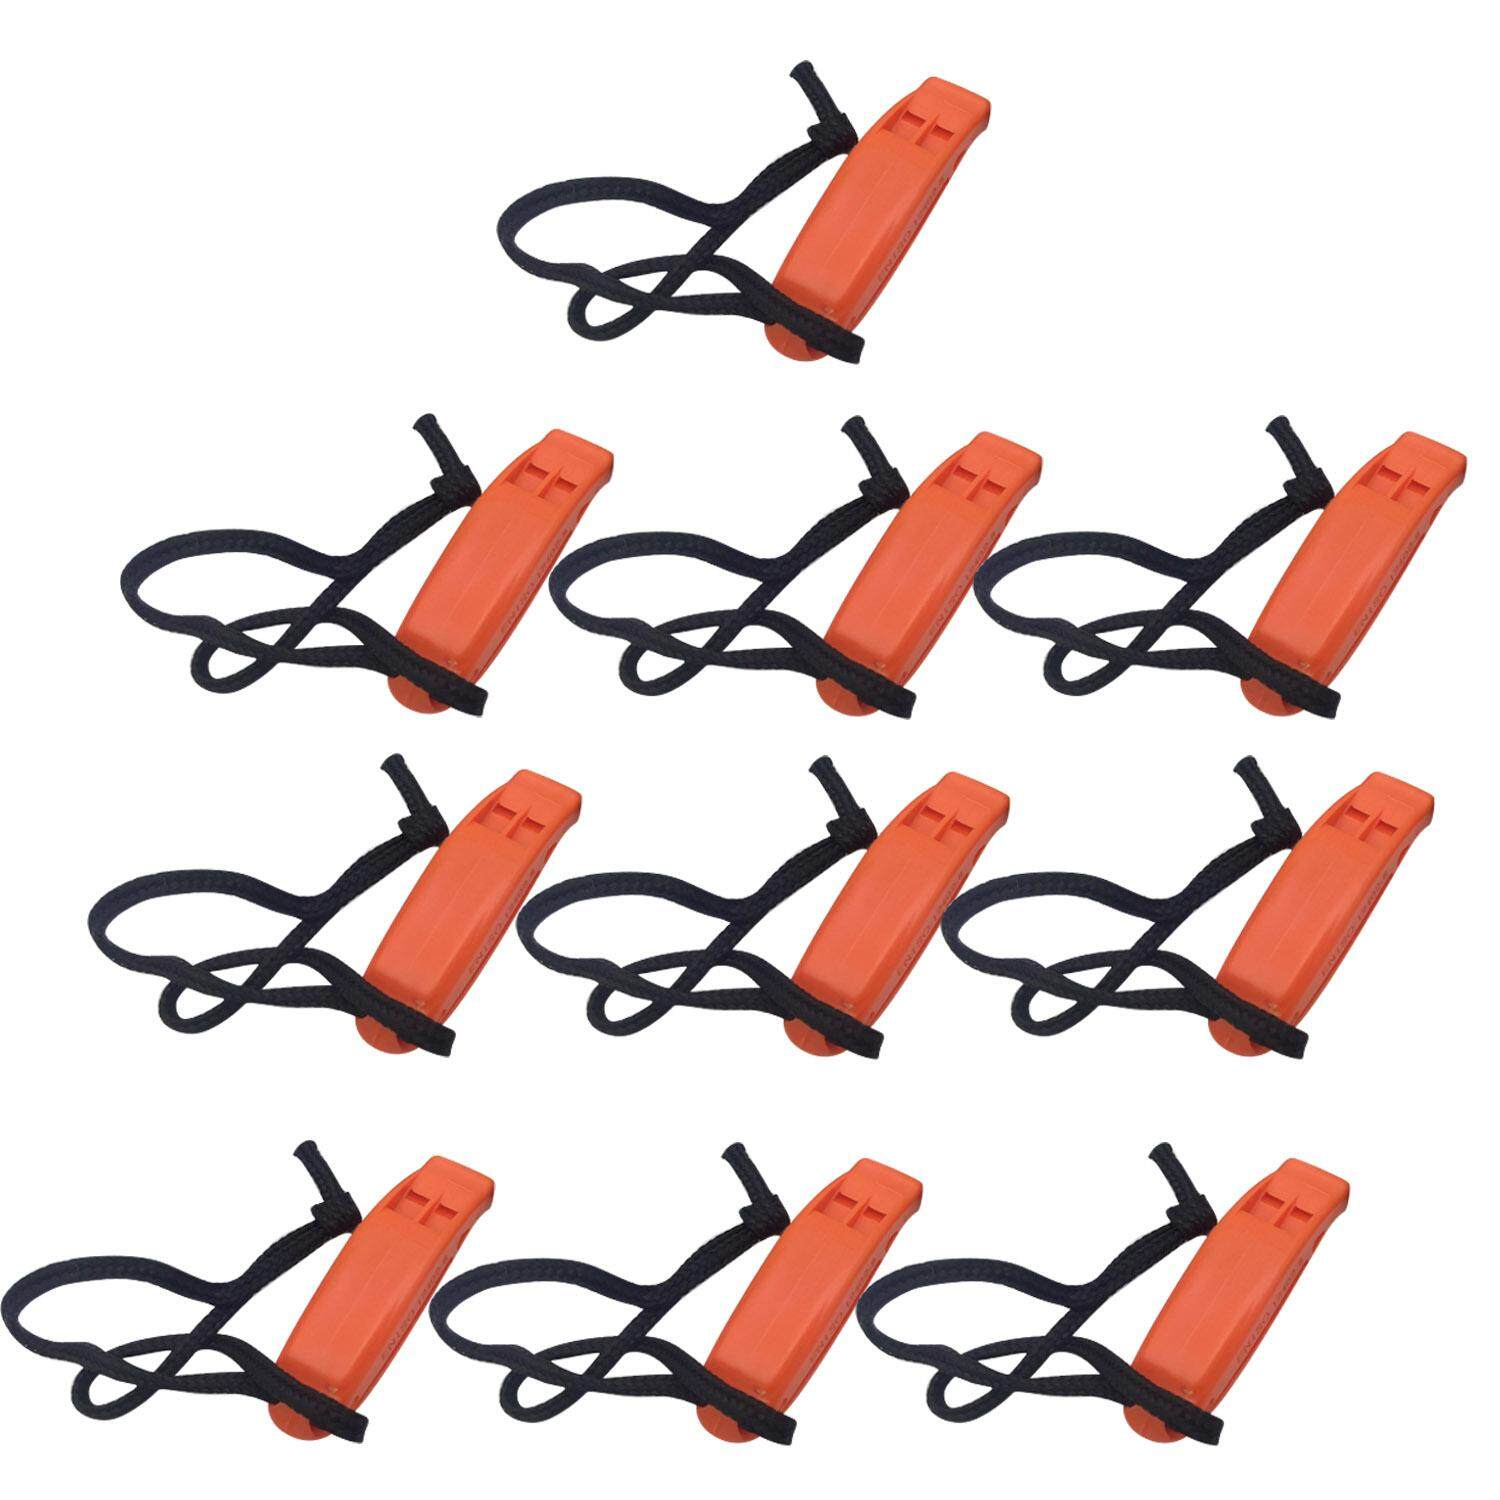 10pcs Emergency Whistle Outdoor Survival Safety Double Tube Loud Whistle With Clip For Hiking Camping Climbing Boating Orange By Duha.